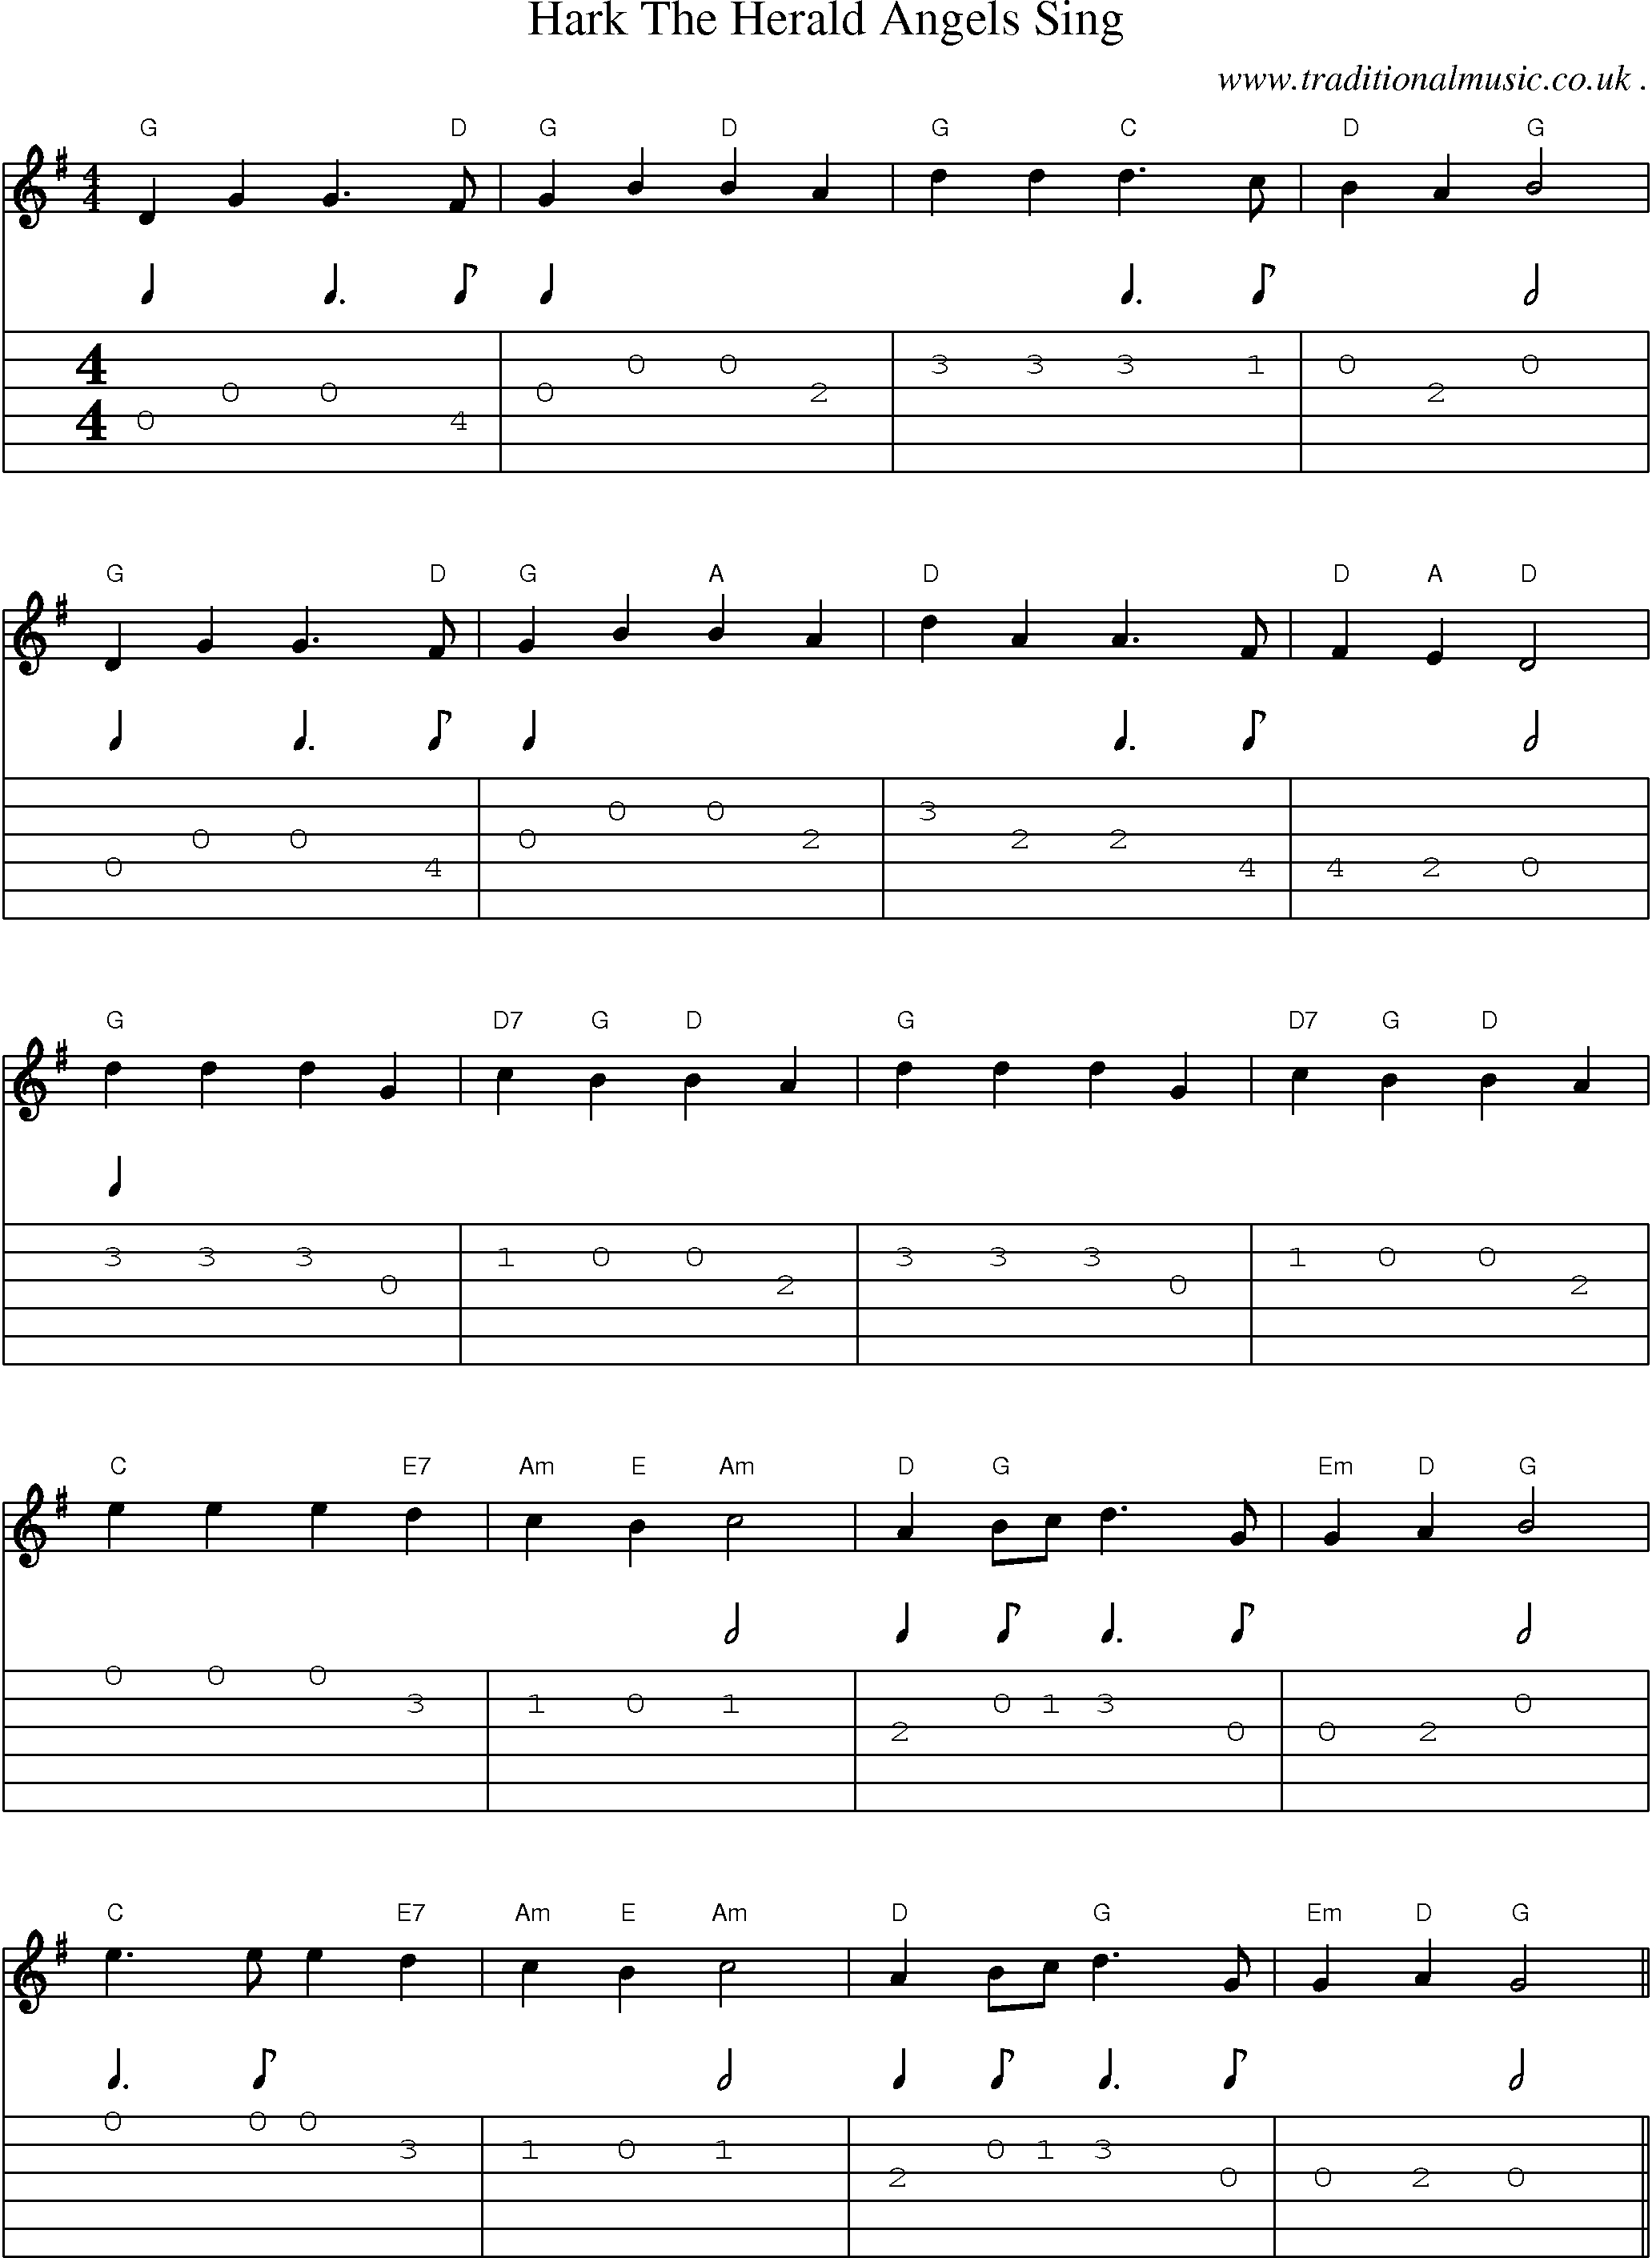 Music Score And Guitar Tabs For Hark The Herald Angels Sing Sheet